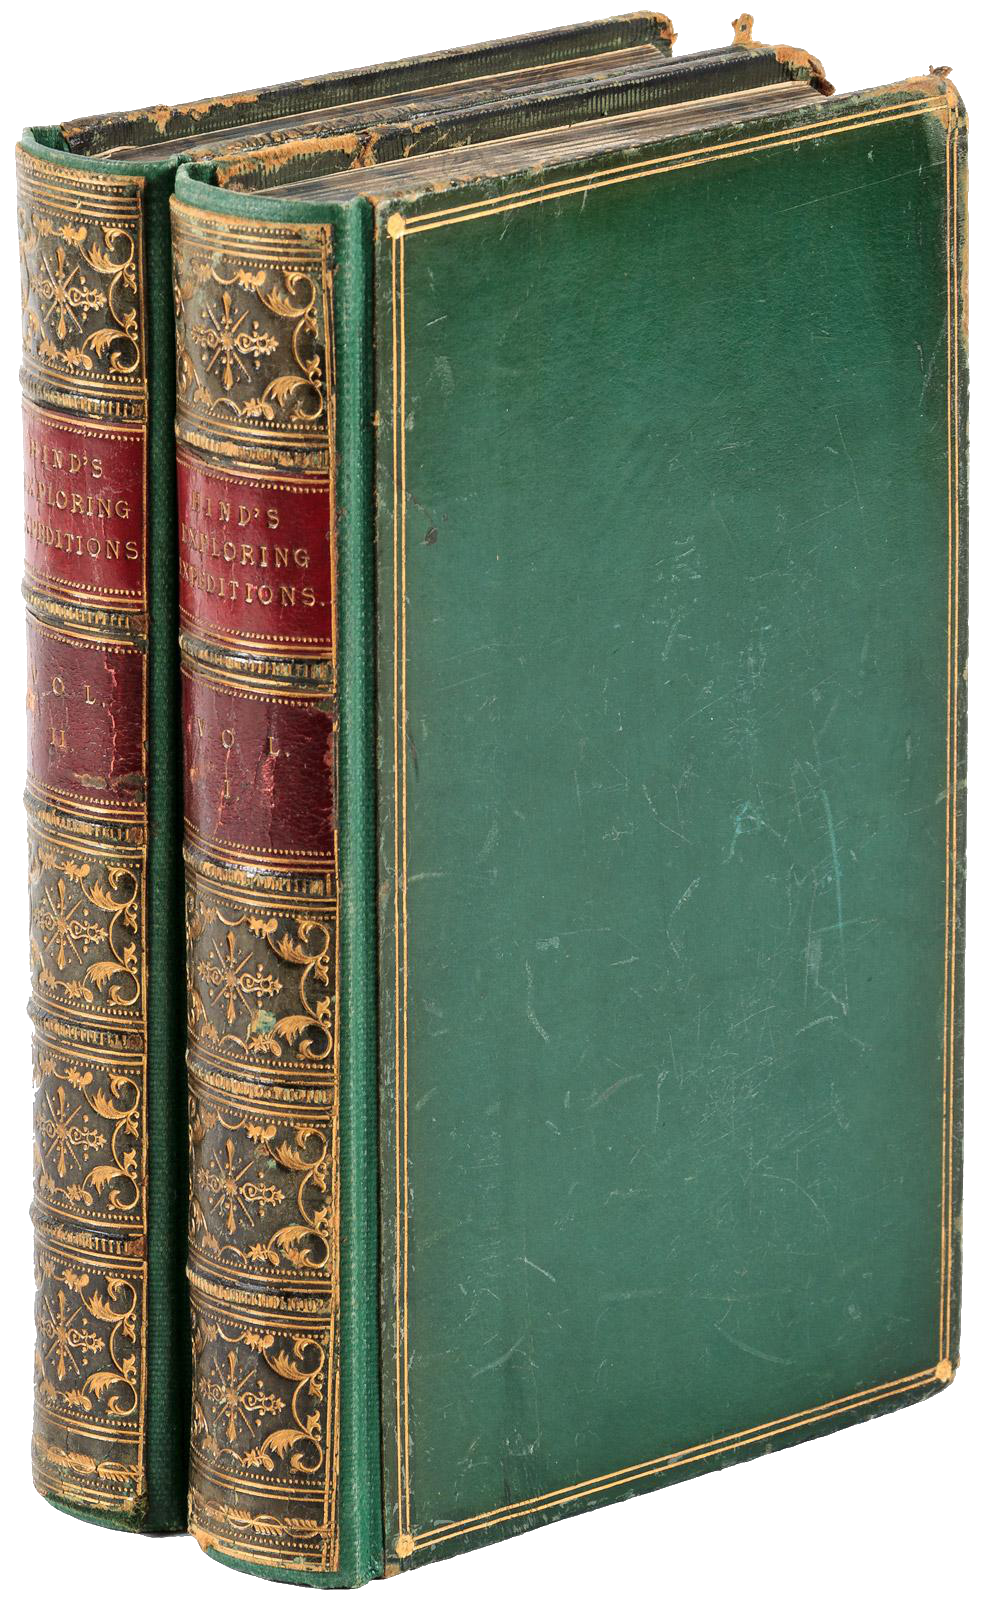 Narrative of the Canadian Red River Exploring Expedition Vol. 1 - Book Display (1860)